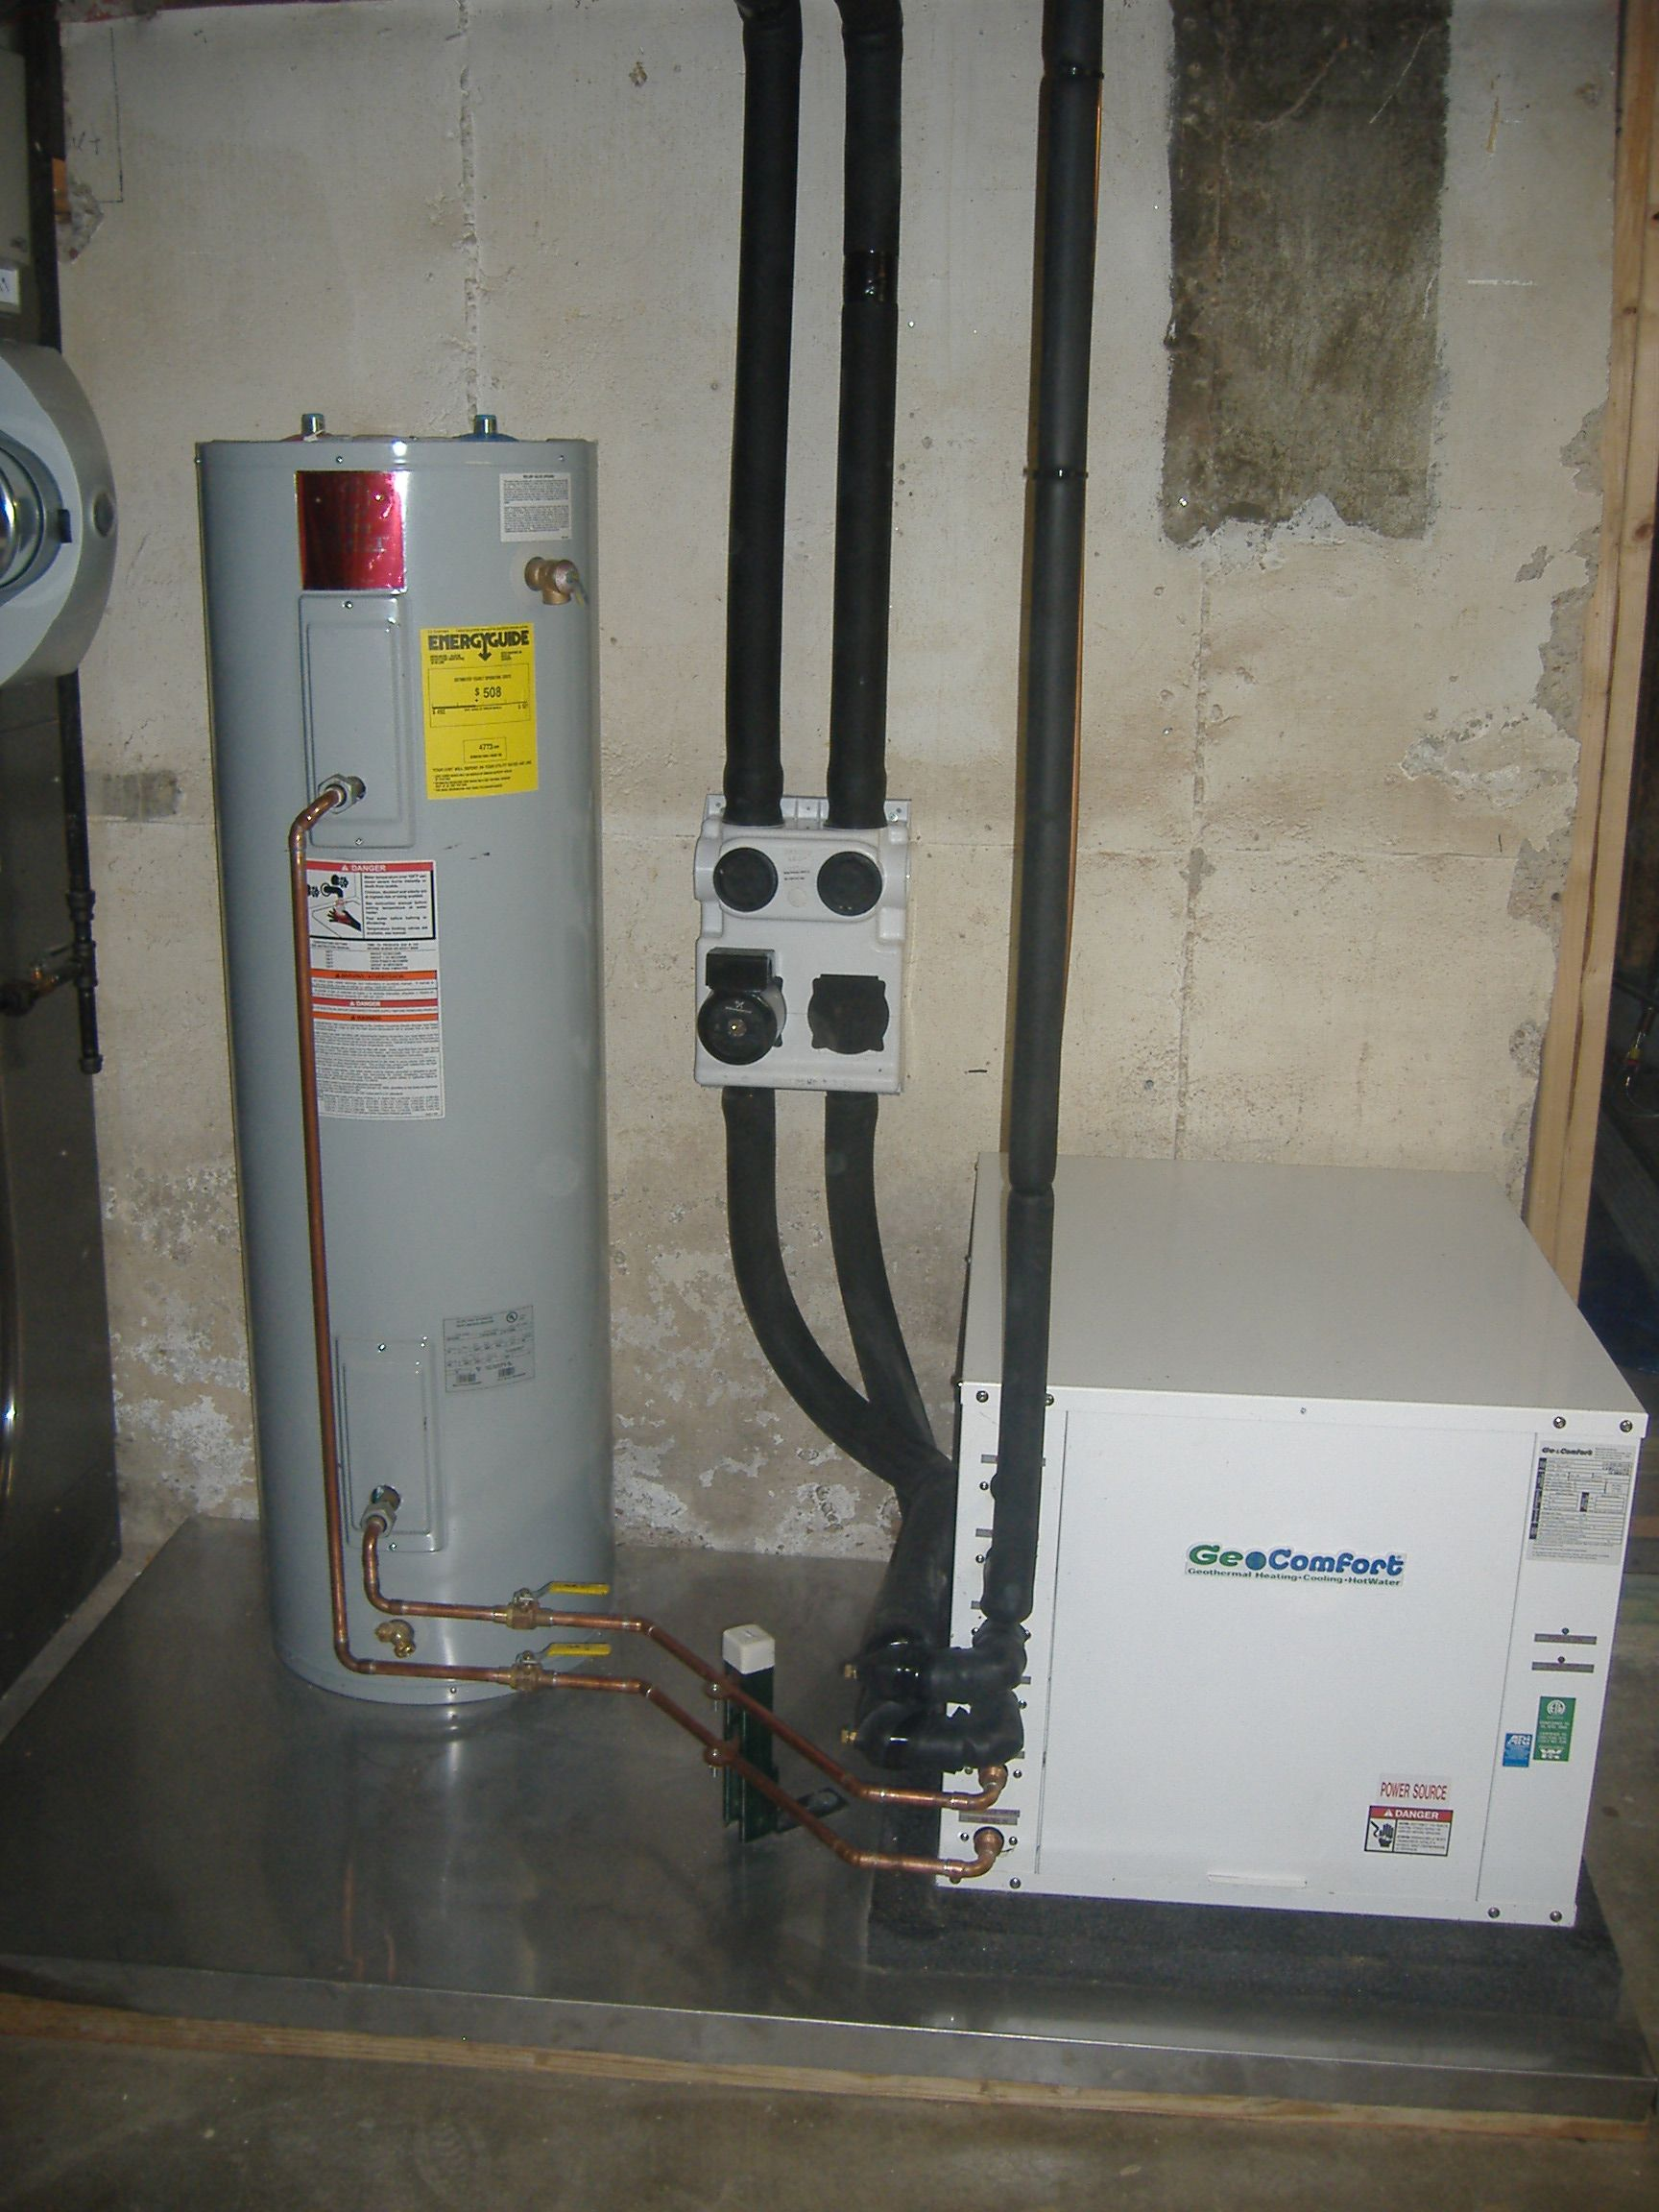 St Louis Mo Geothermal Heating Cooling Recent Geothermal Heat Pump Projects Geothermal Heating Cooling Geothermal Heating Geothermal Energy